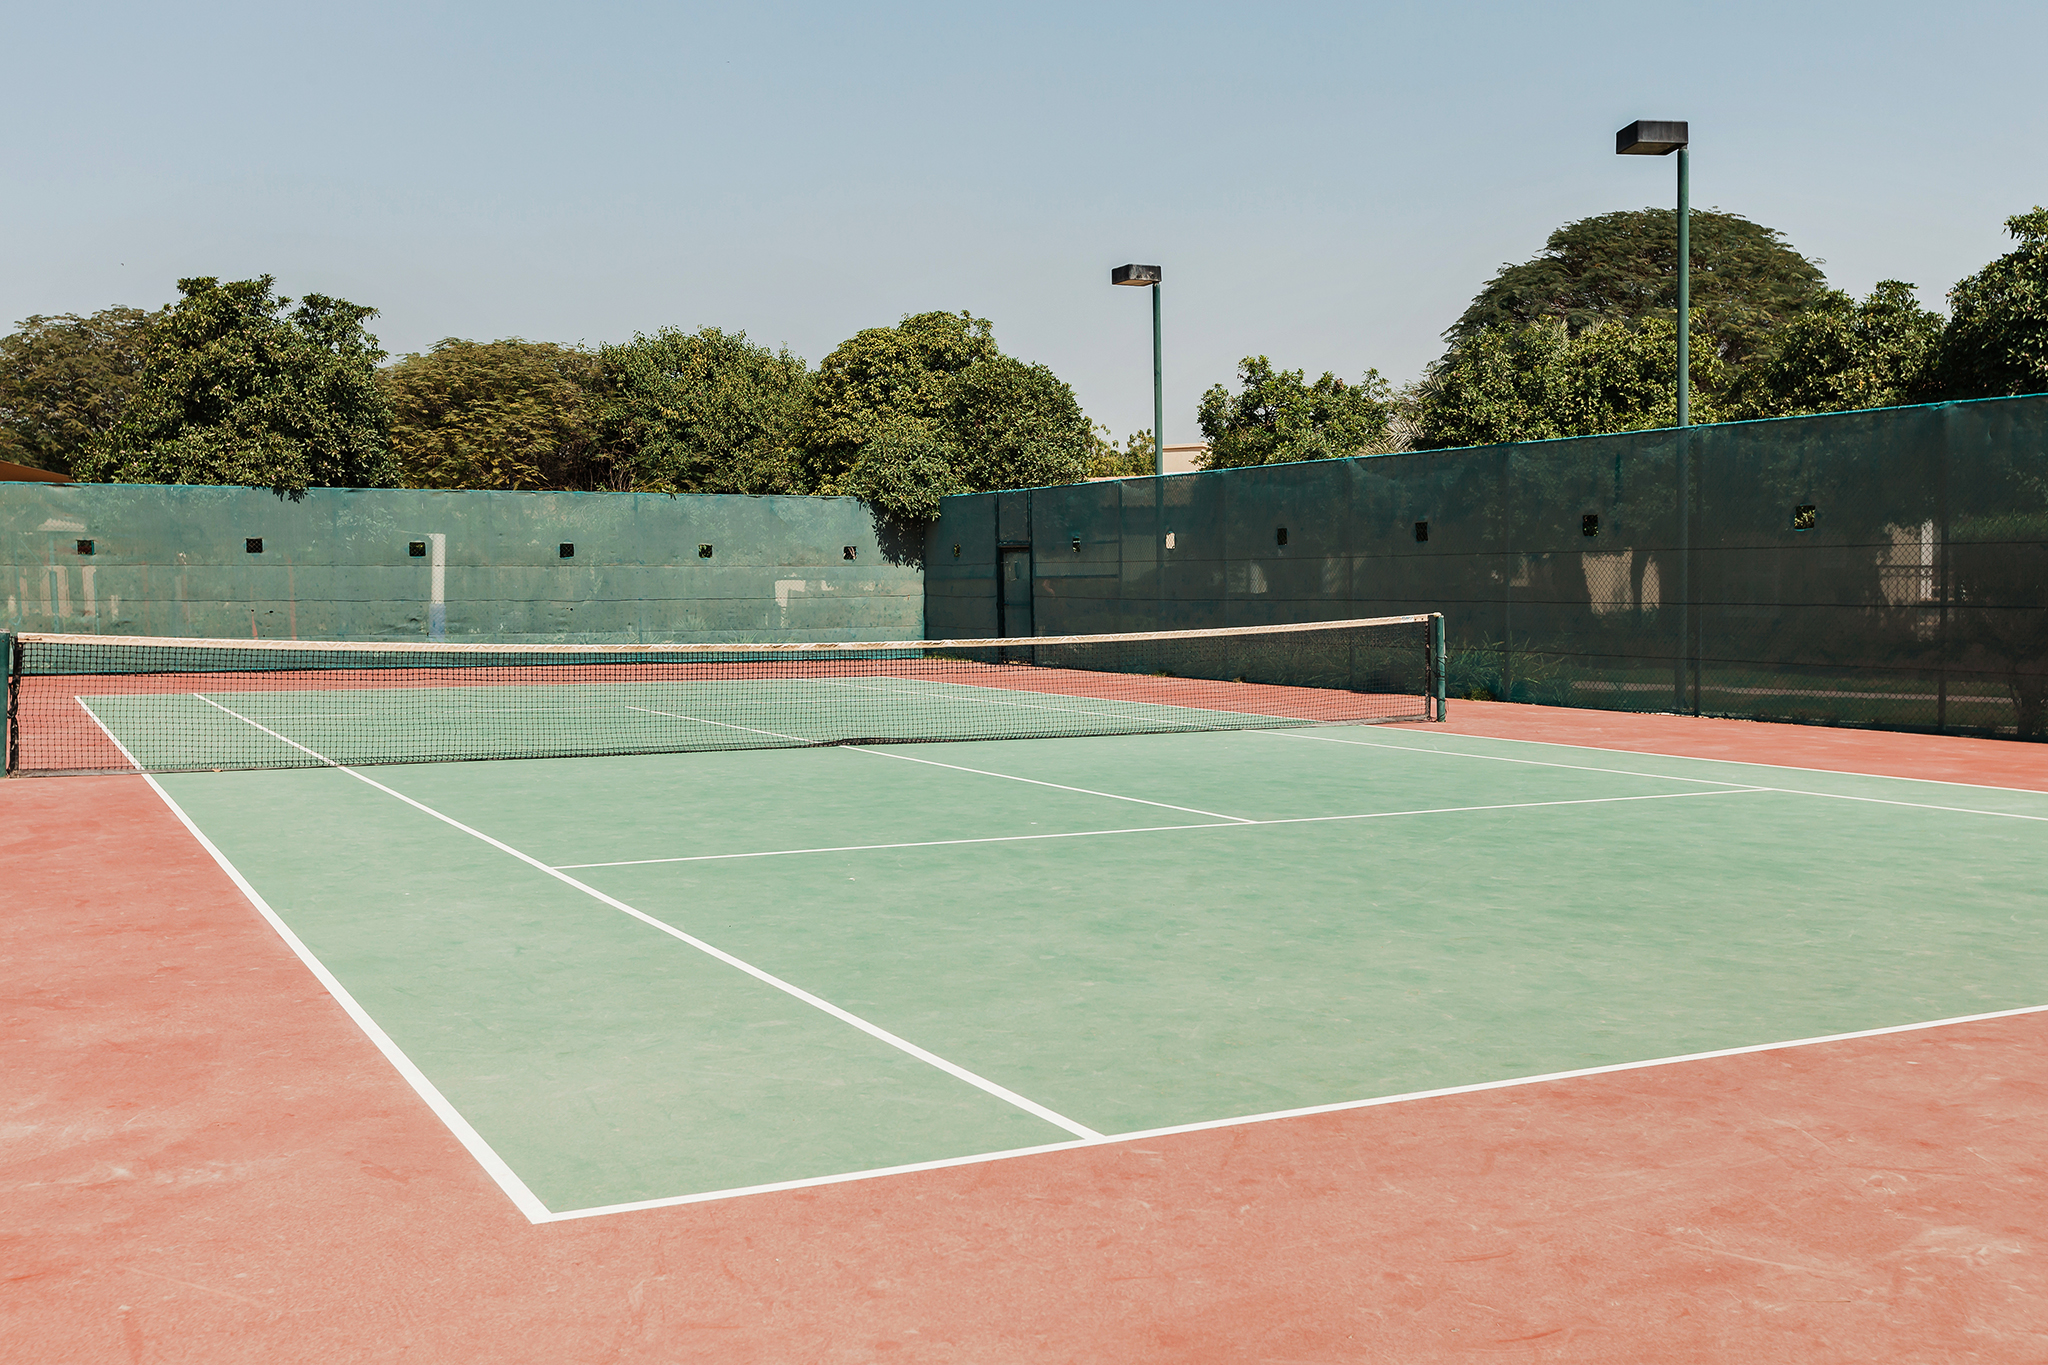 Play tennis and have fun under the sun!